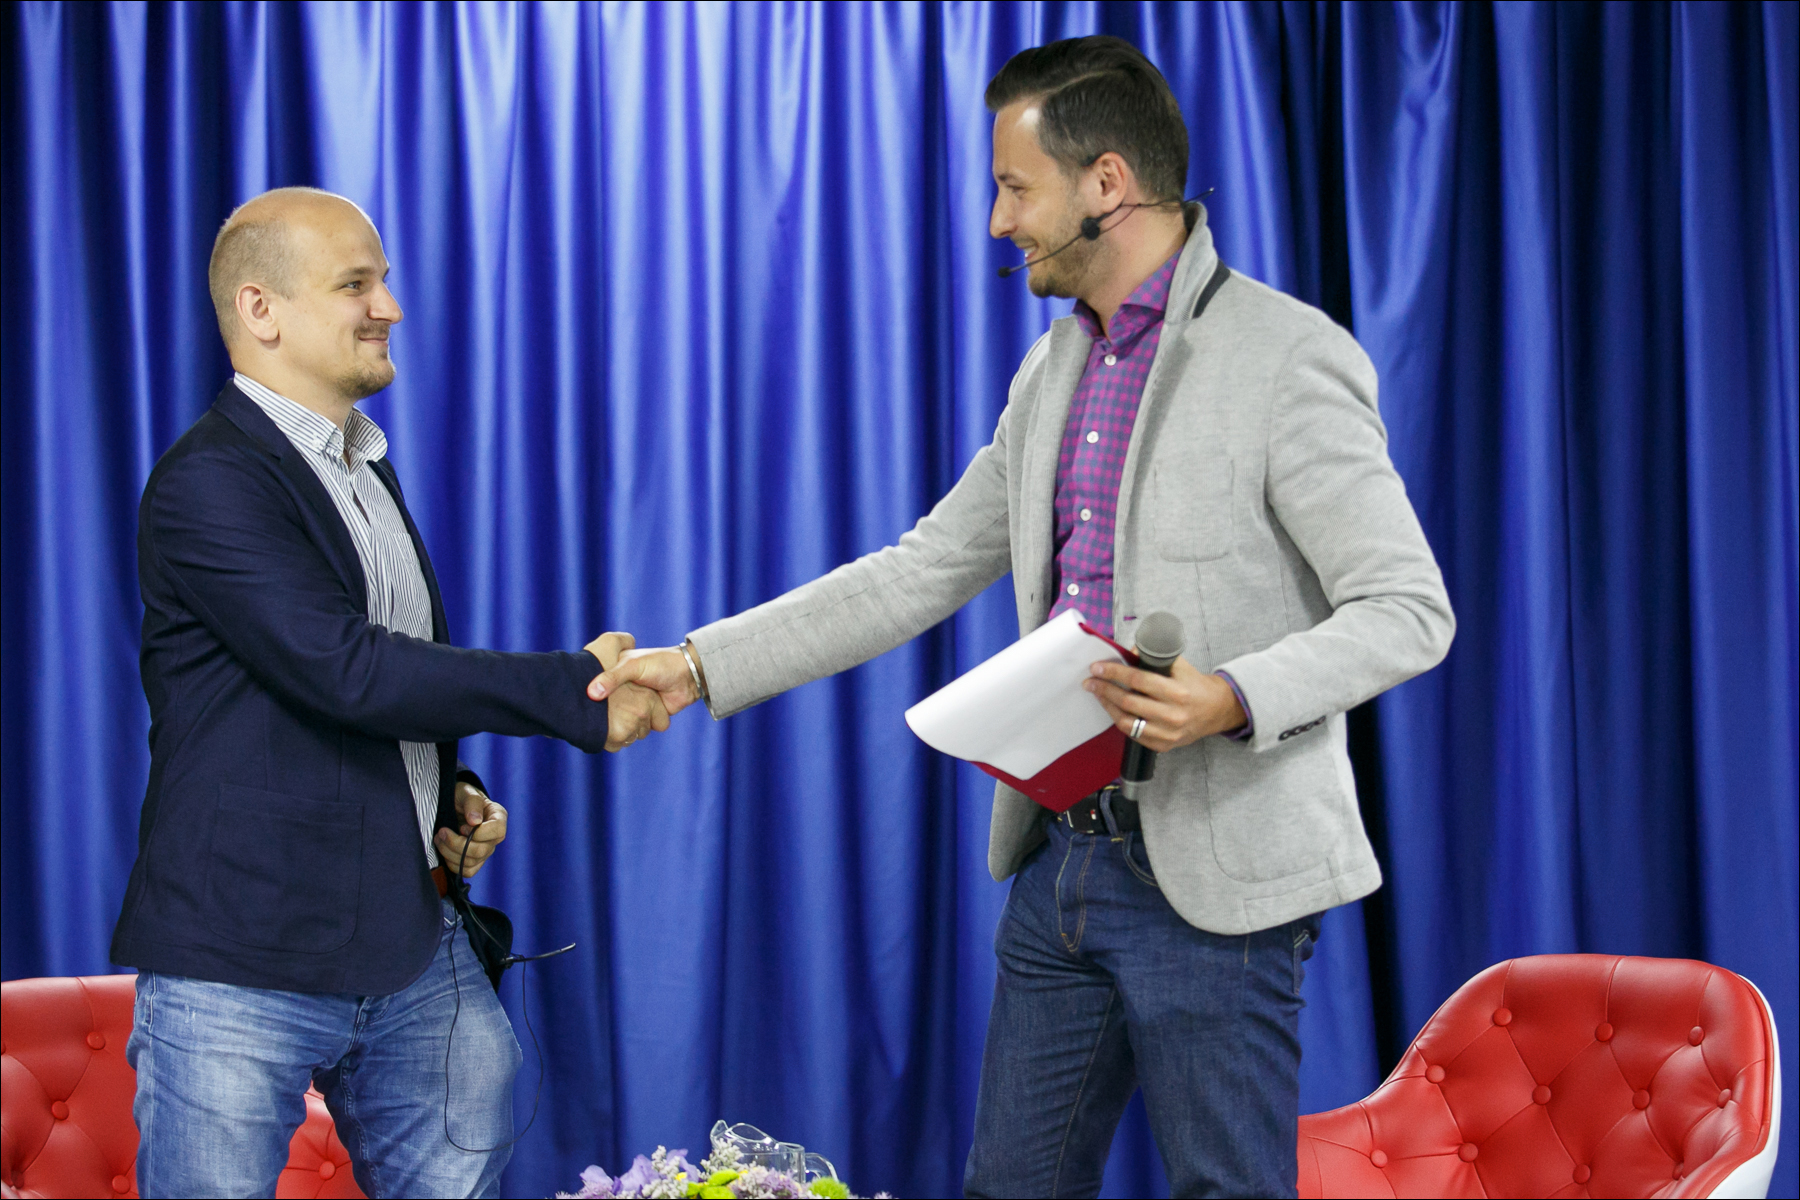 Michael Sender (Schibsted) and Alexander Chekan (Tut By Media) shaking hands over Kufar-Second deal.